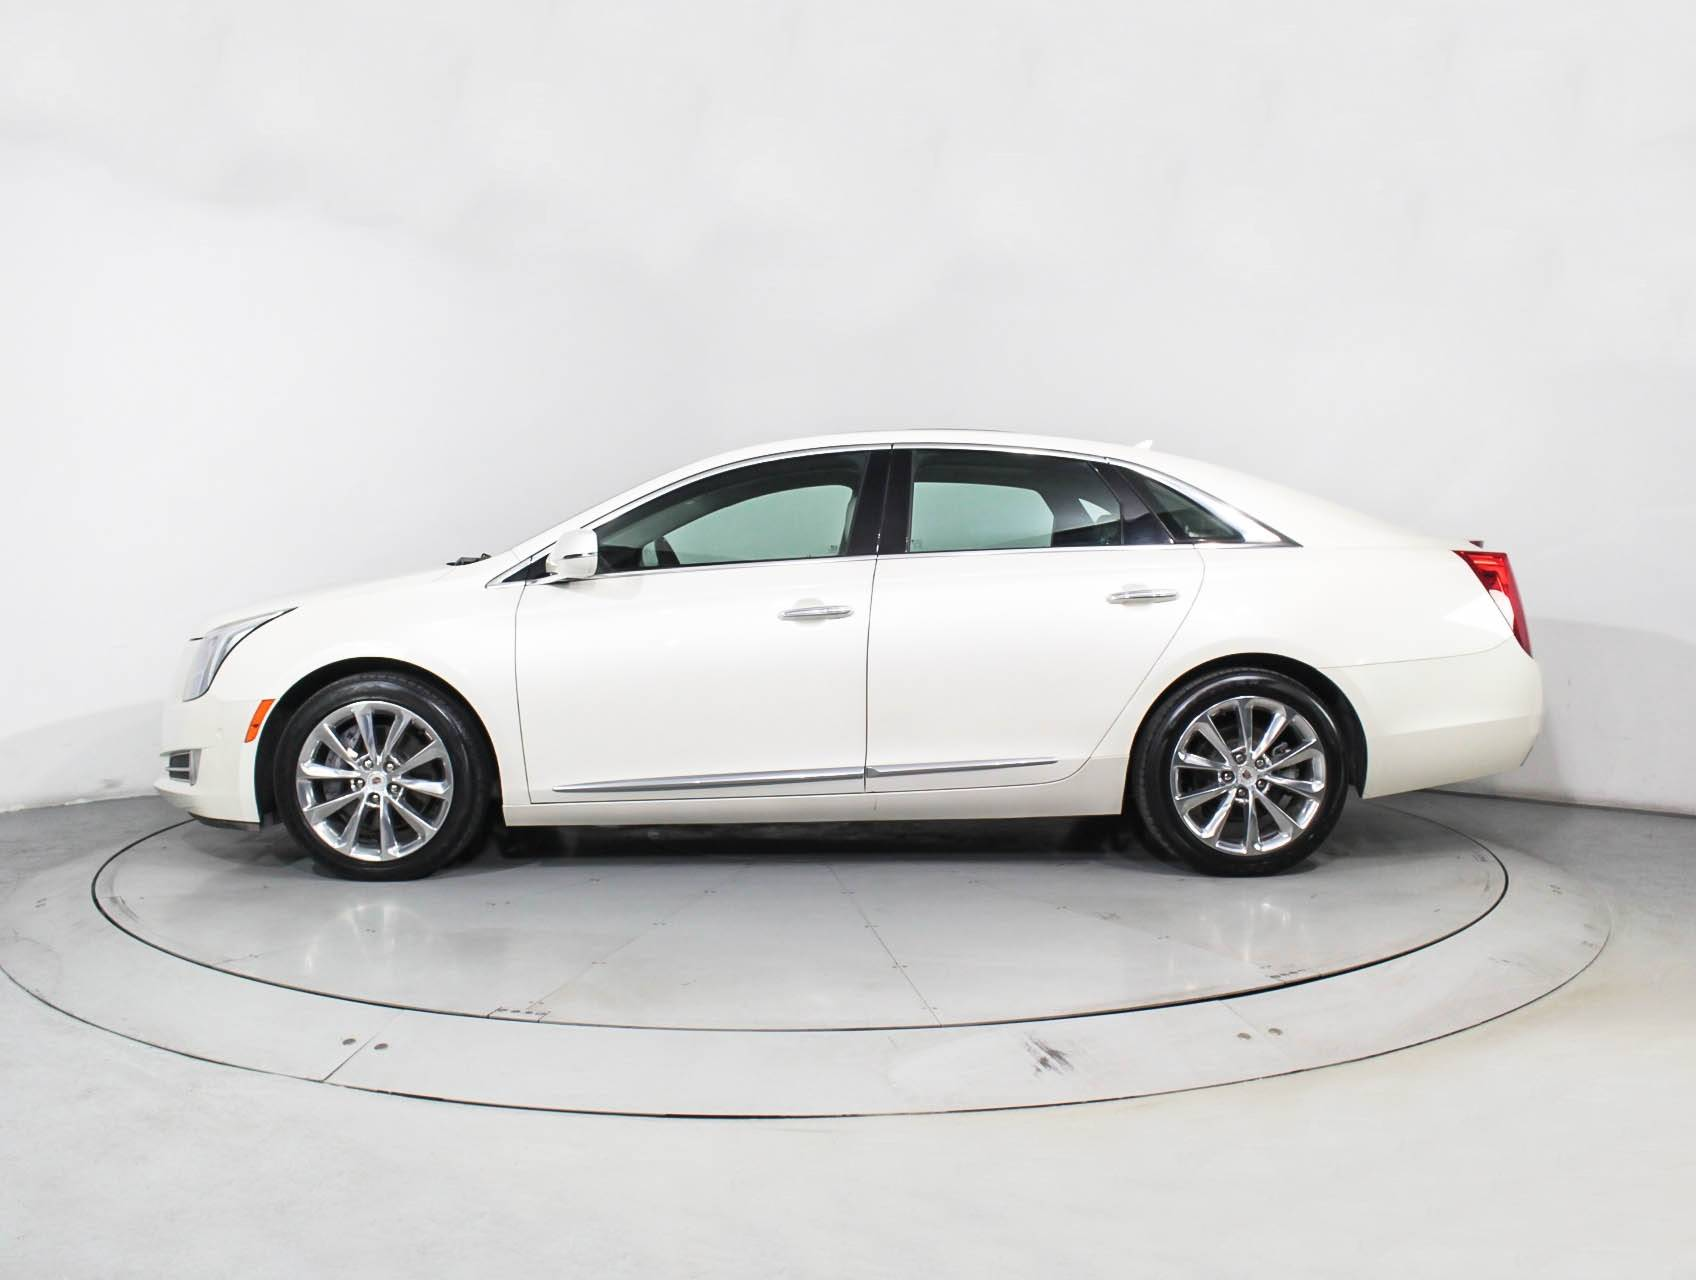 carsforsale cadillac in stock used xts sale luxury cars for fine fl florida margate sedan